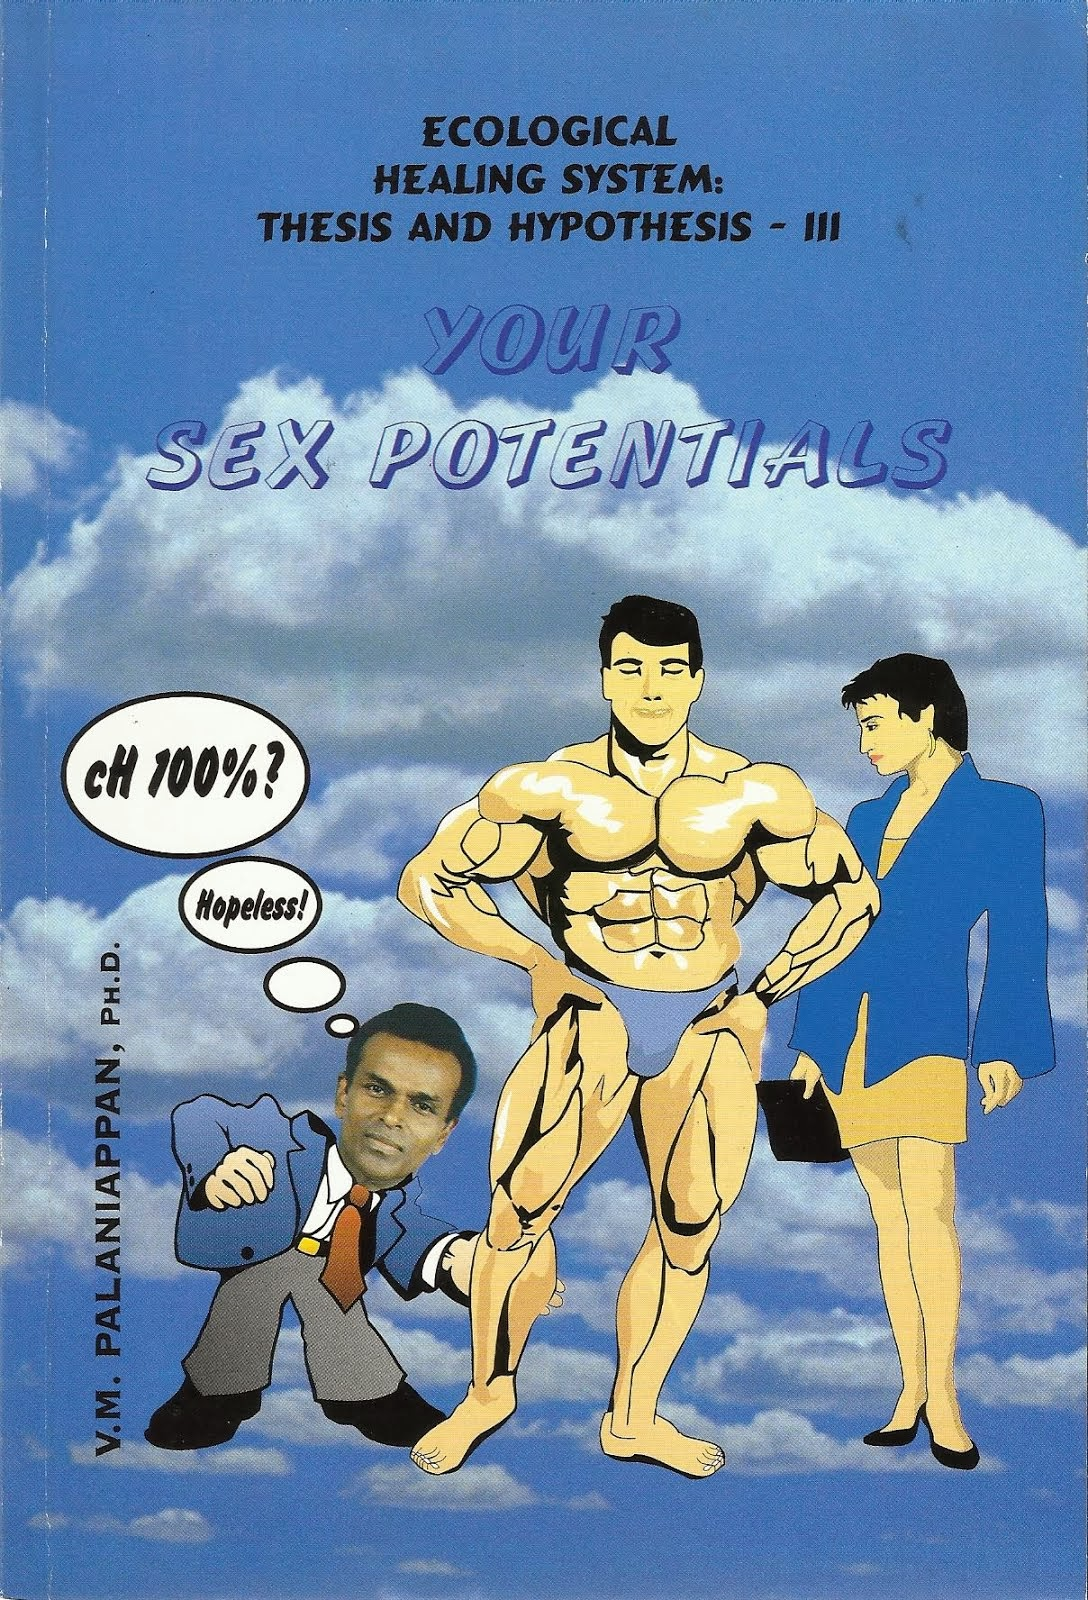 YOUR SEX POTENTIALS